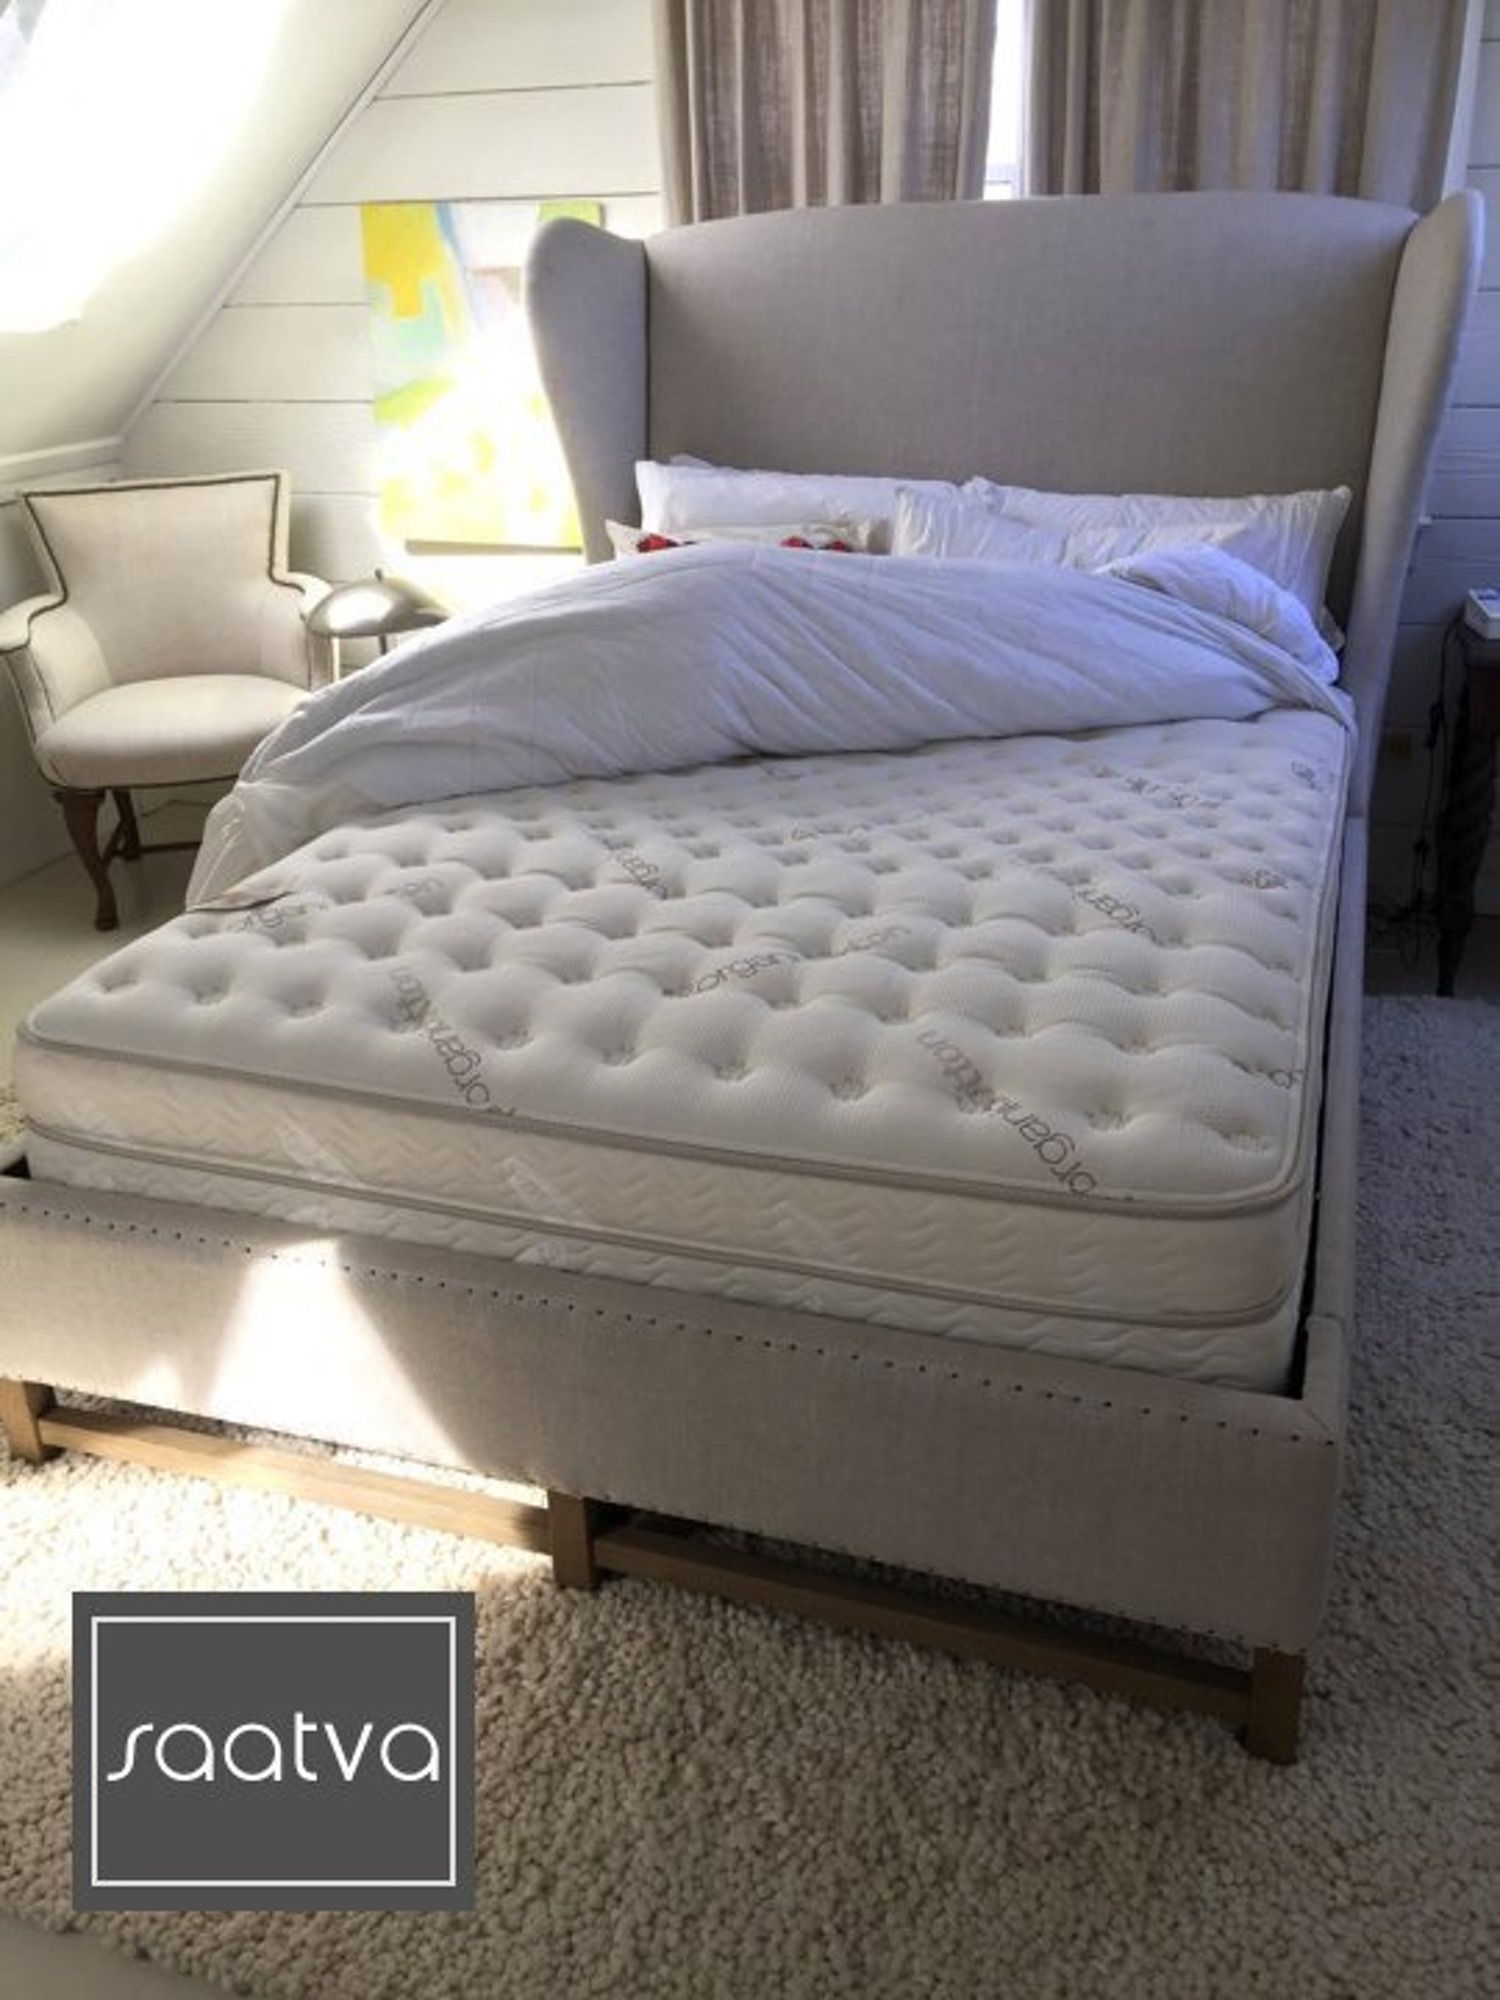 Review Saatva Luxury Firm Mattress Luxury mattresses